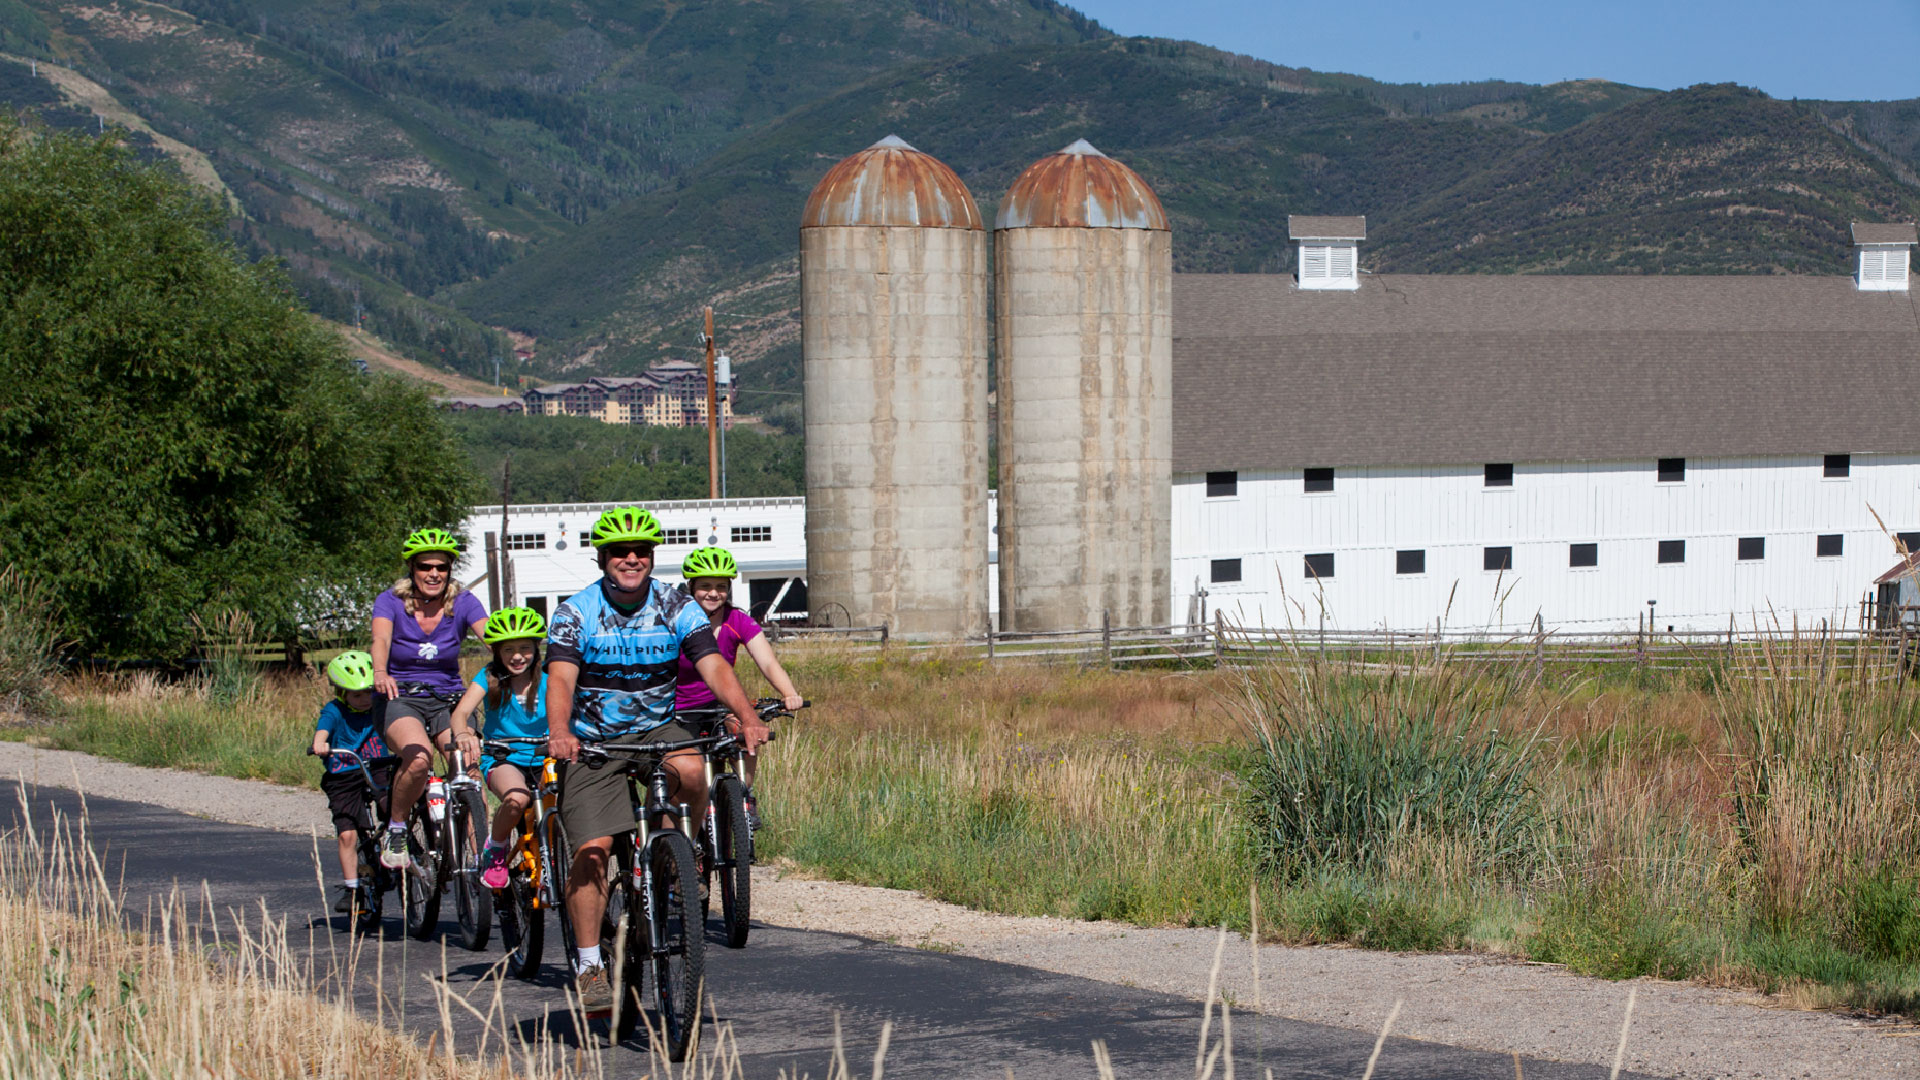 Guided Park City Bike Path Tour from White Pine Touring in Park City, UT.